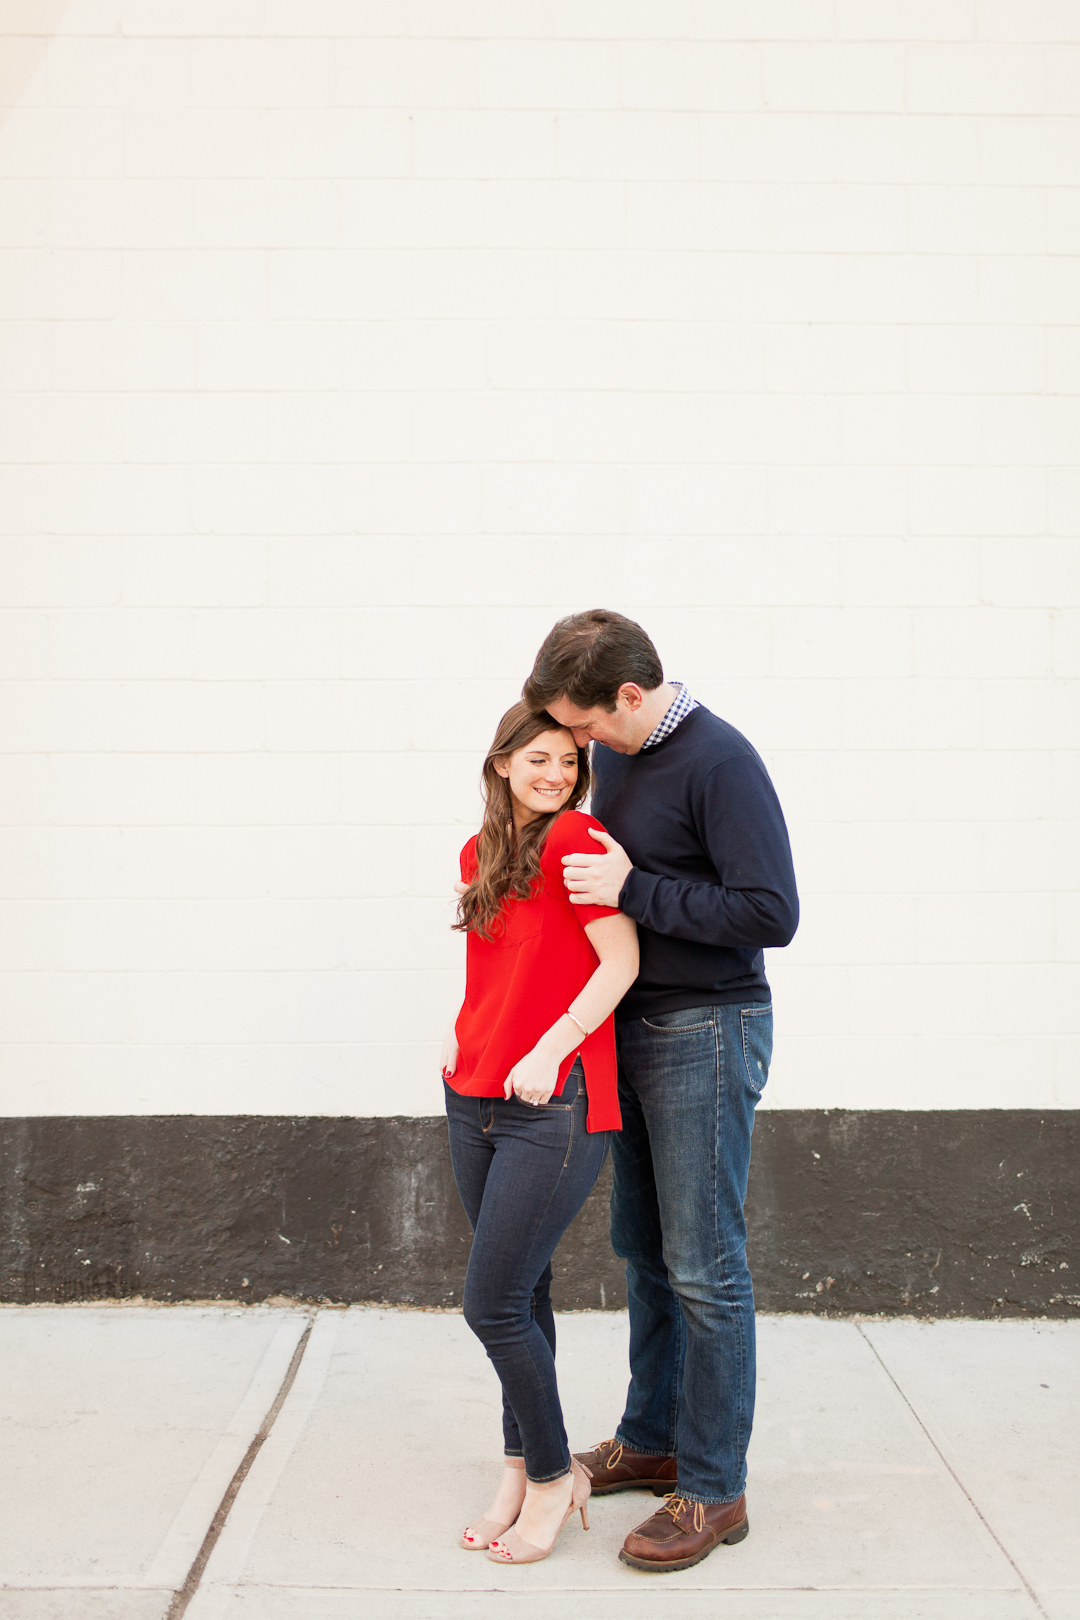 Melissa Kruse Photography - Tess & Brendan Engagement Photos-48.jpg